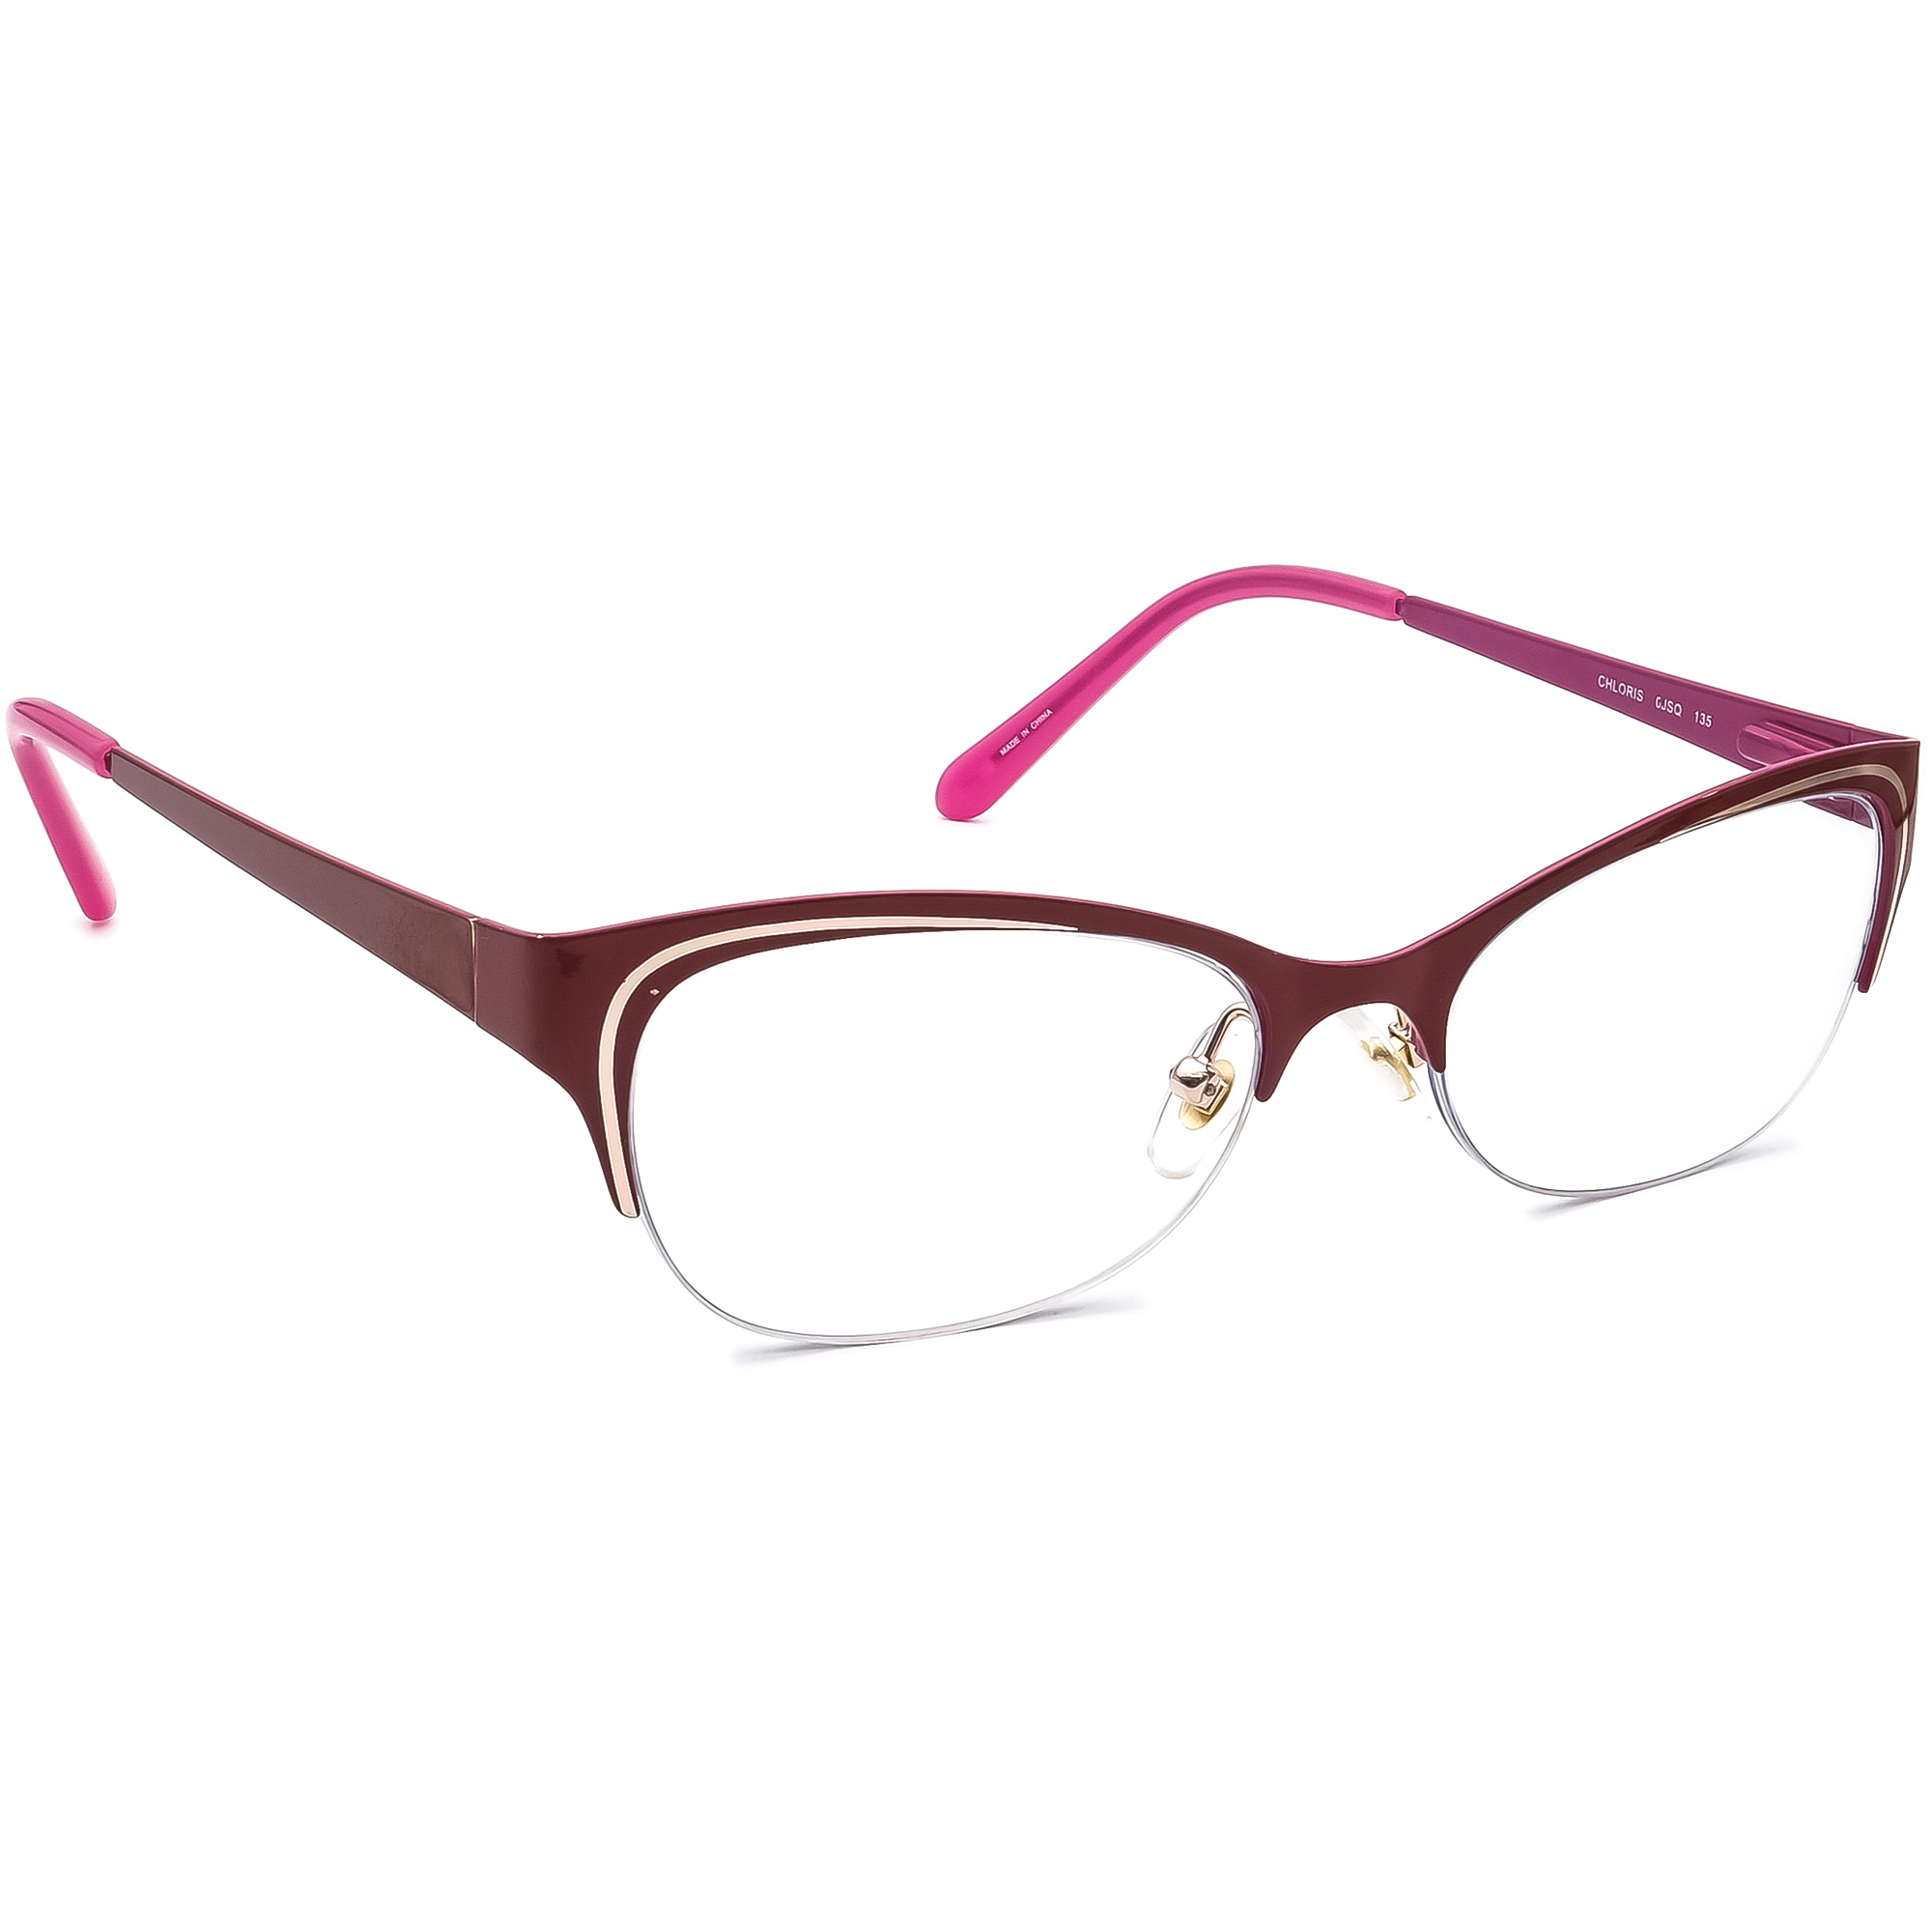 Kate Spade Eyeglasses Chloris 0JSQ Opaque Red Half Rim Metal Frame 52[]17 135